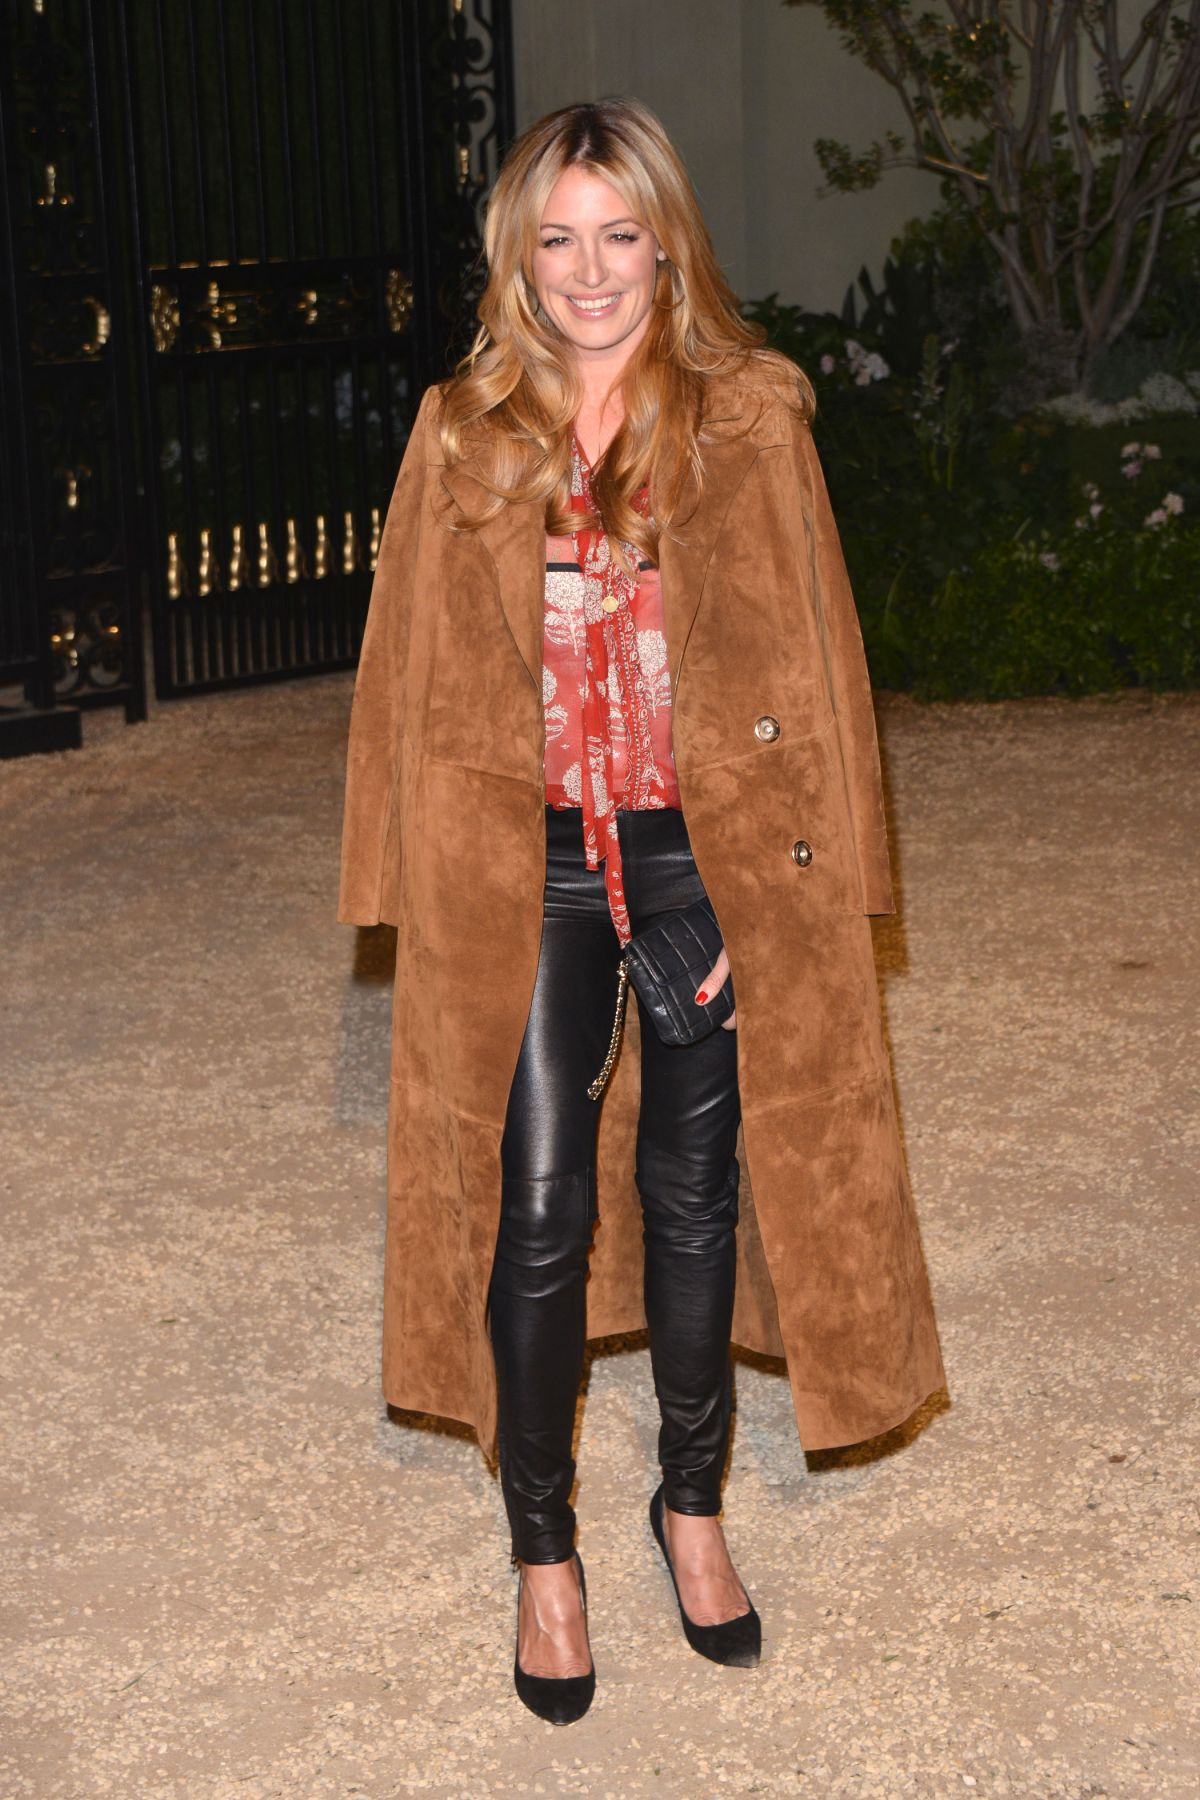 cat-deeley-at-burberry-london-in-los-angeles-event-in-los-angeles_1